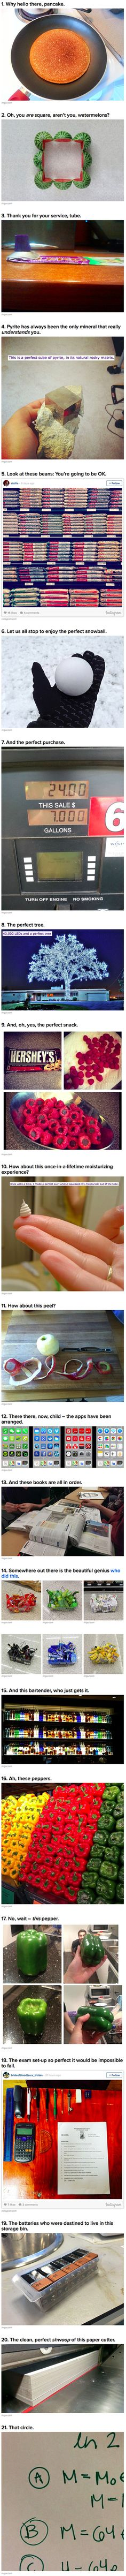 Everyday things done perfectly in an oddly satisfying way...